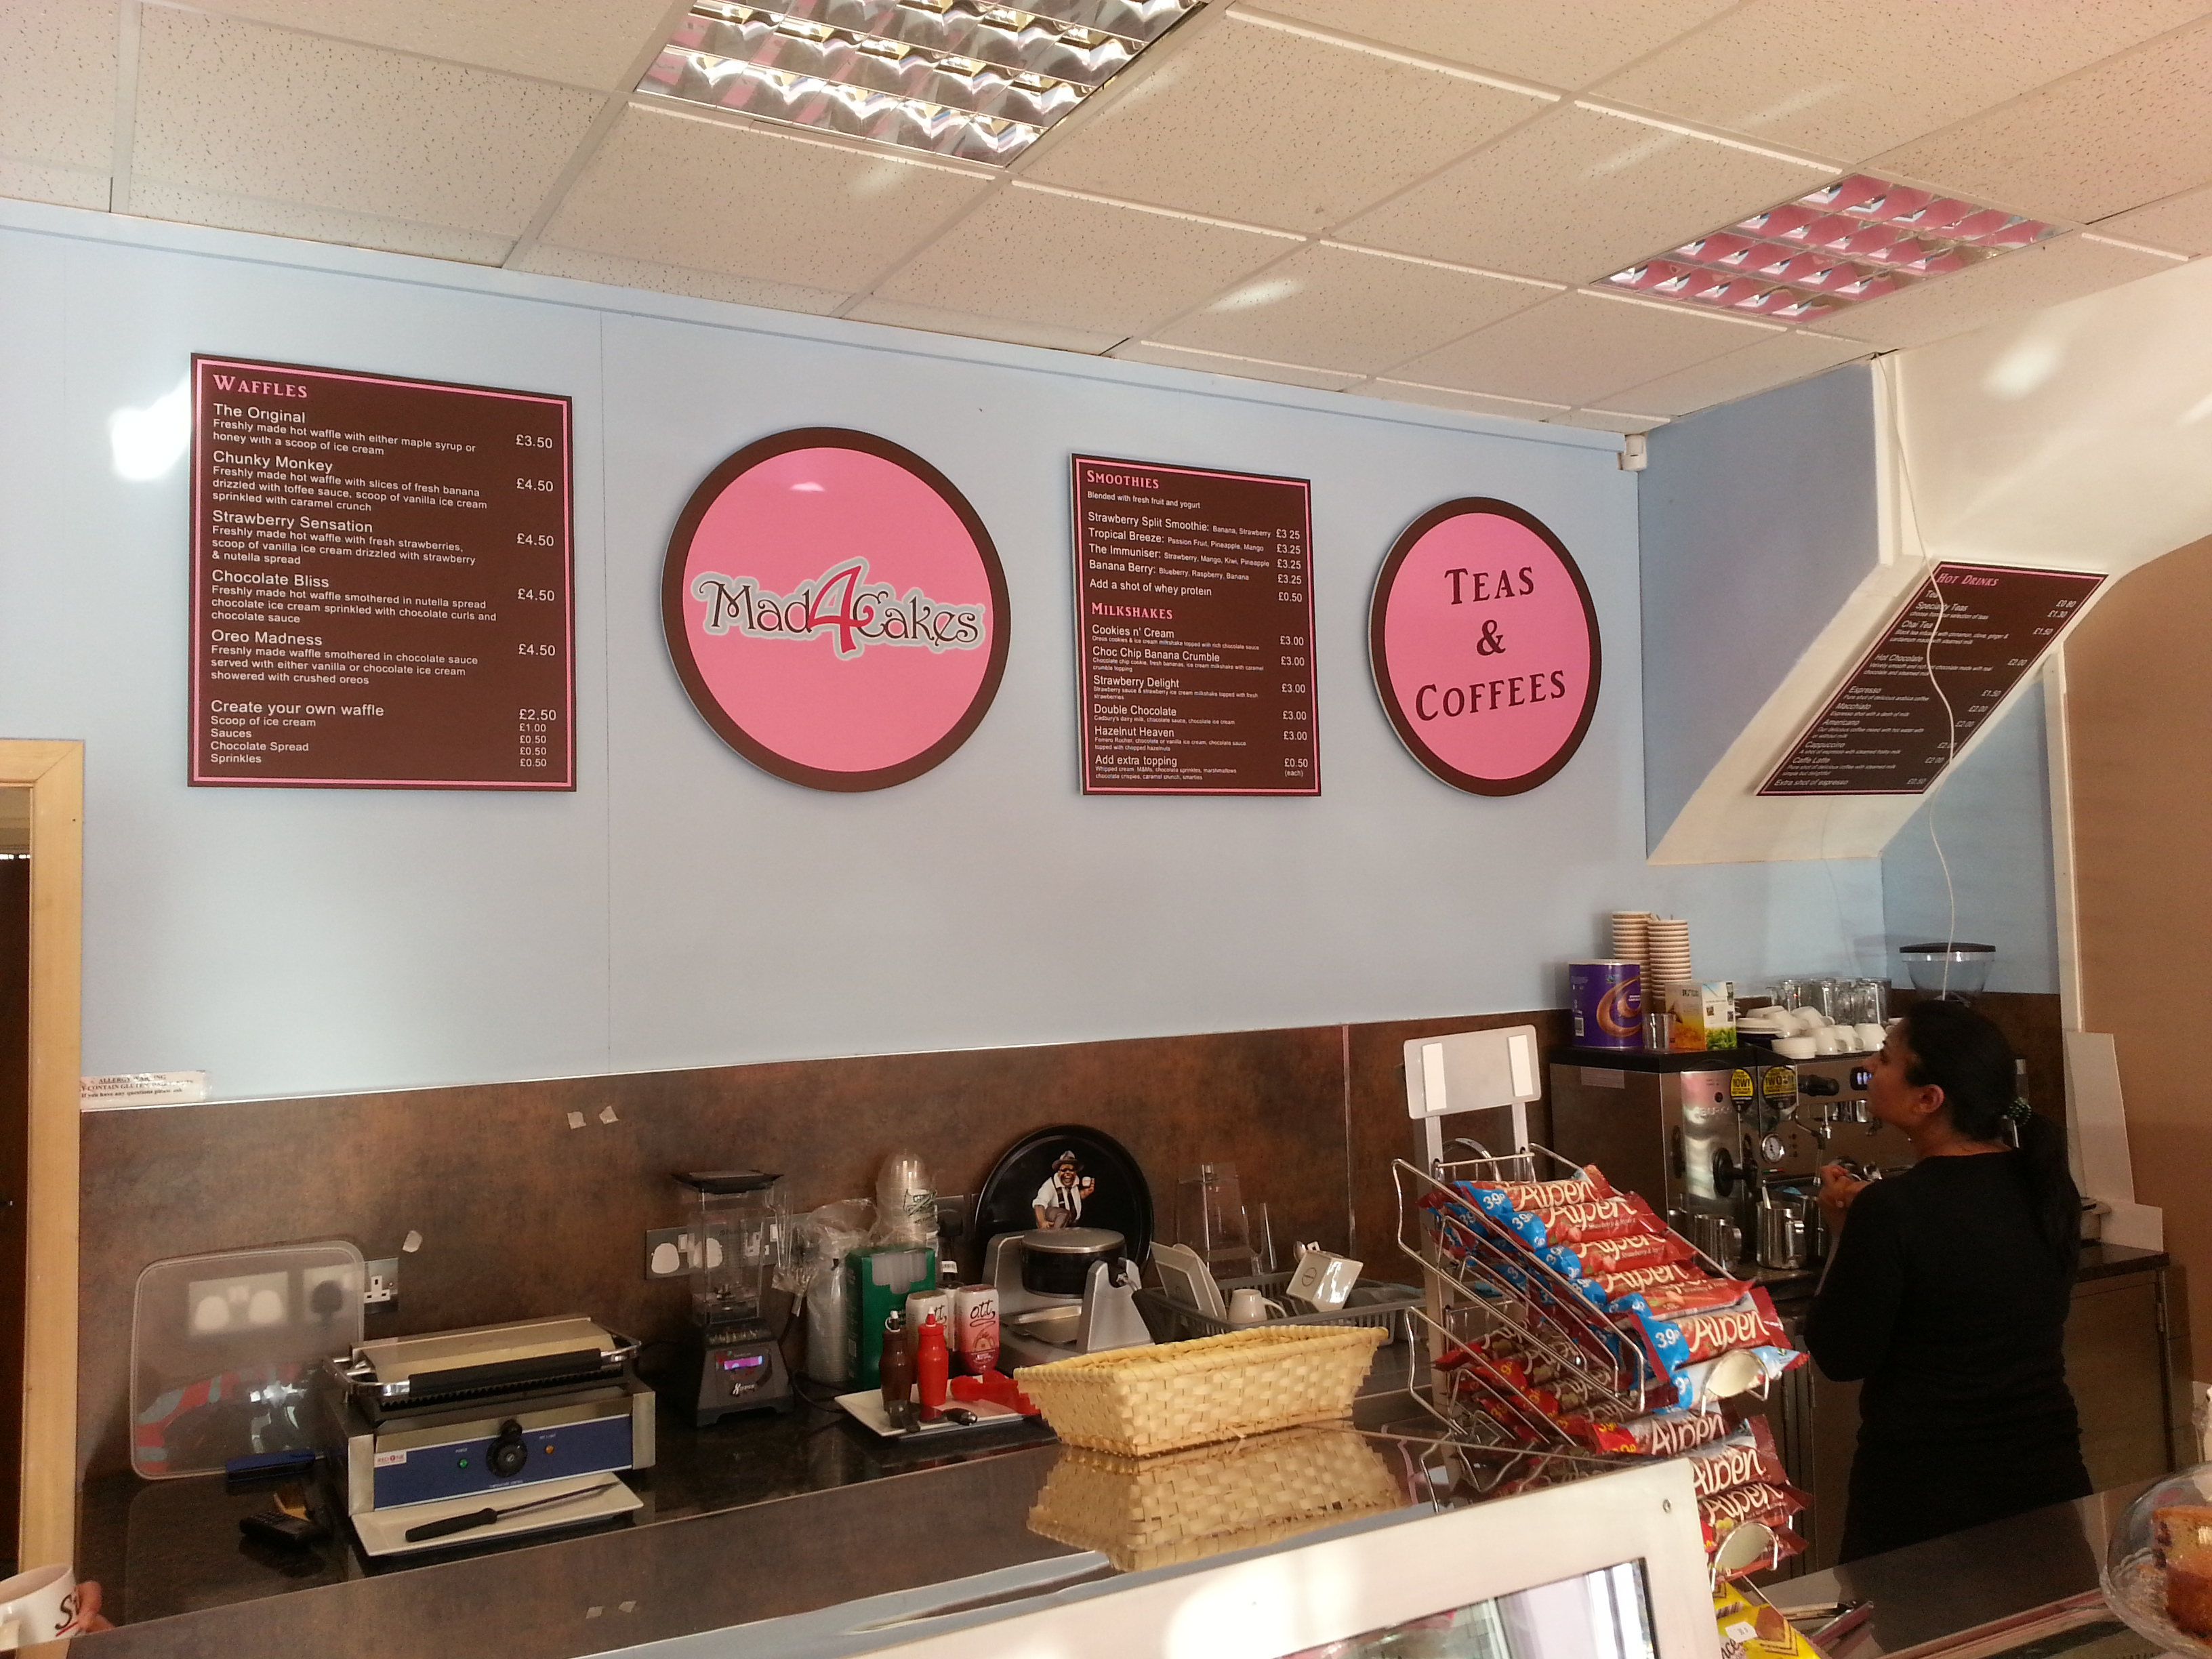 Wall mounted menus - Eastcote